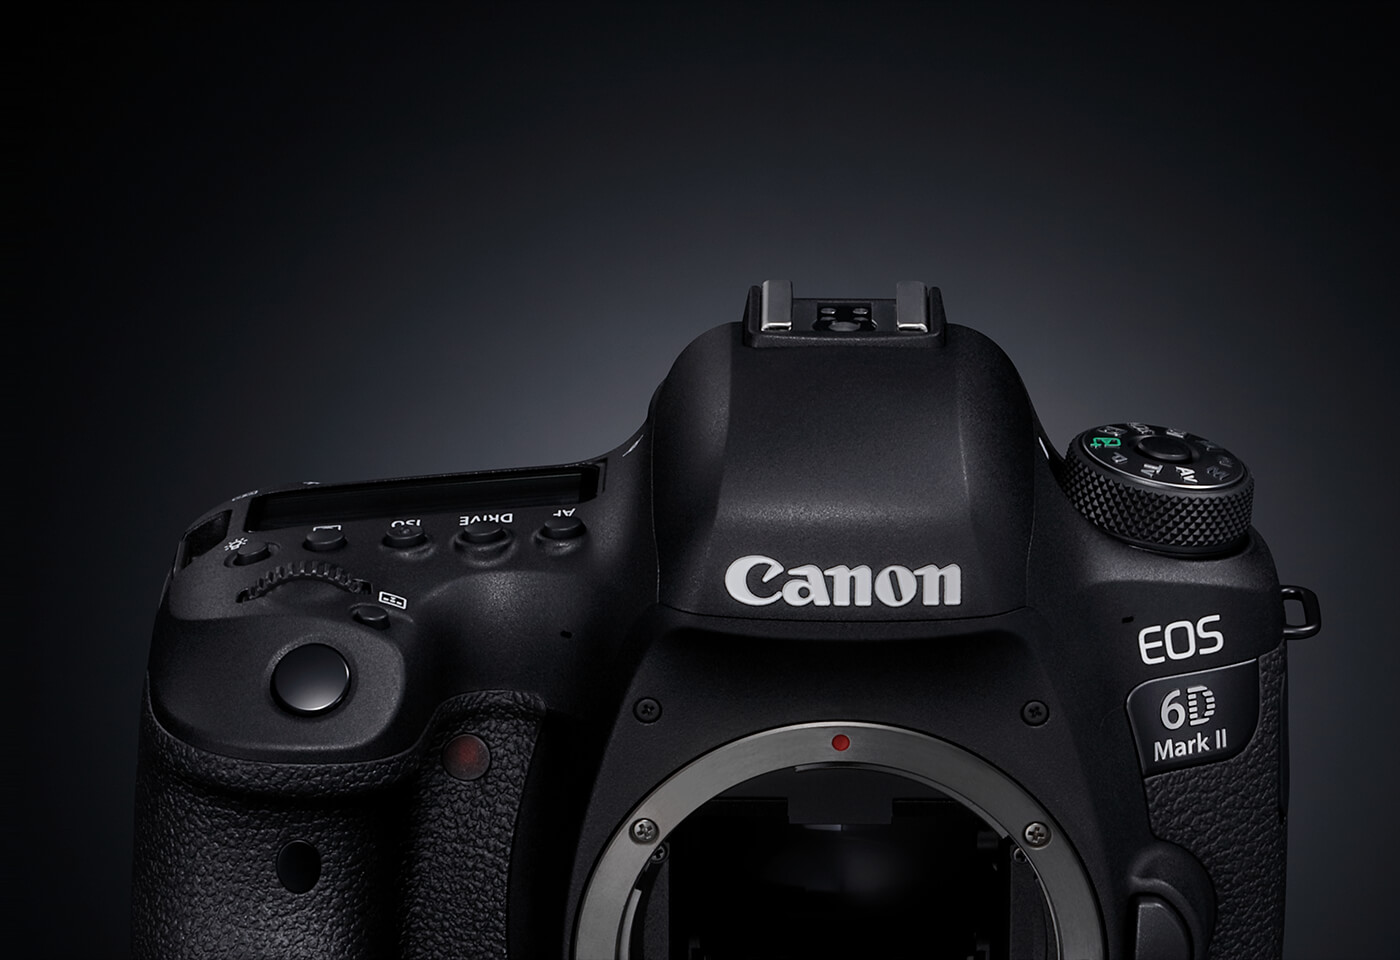 Product image of EOS 6D Mark II without lens